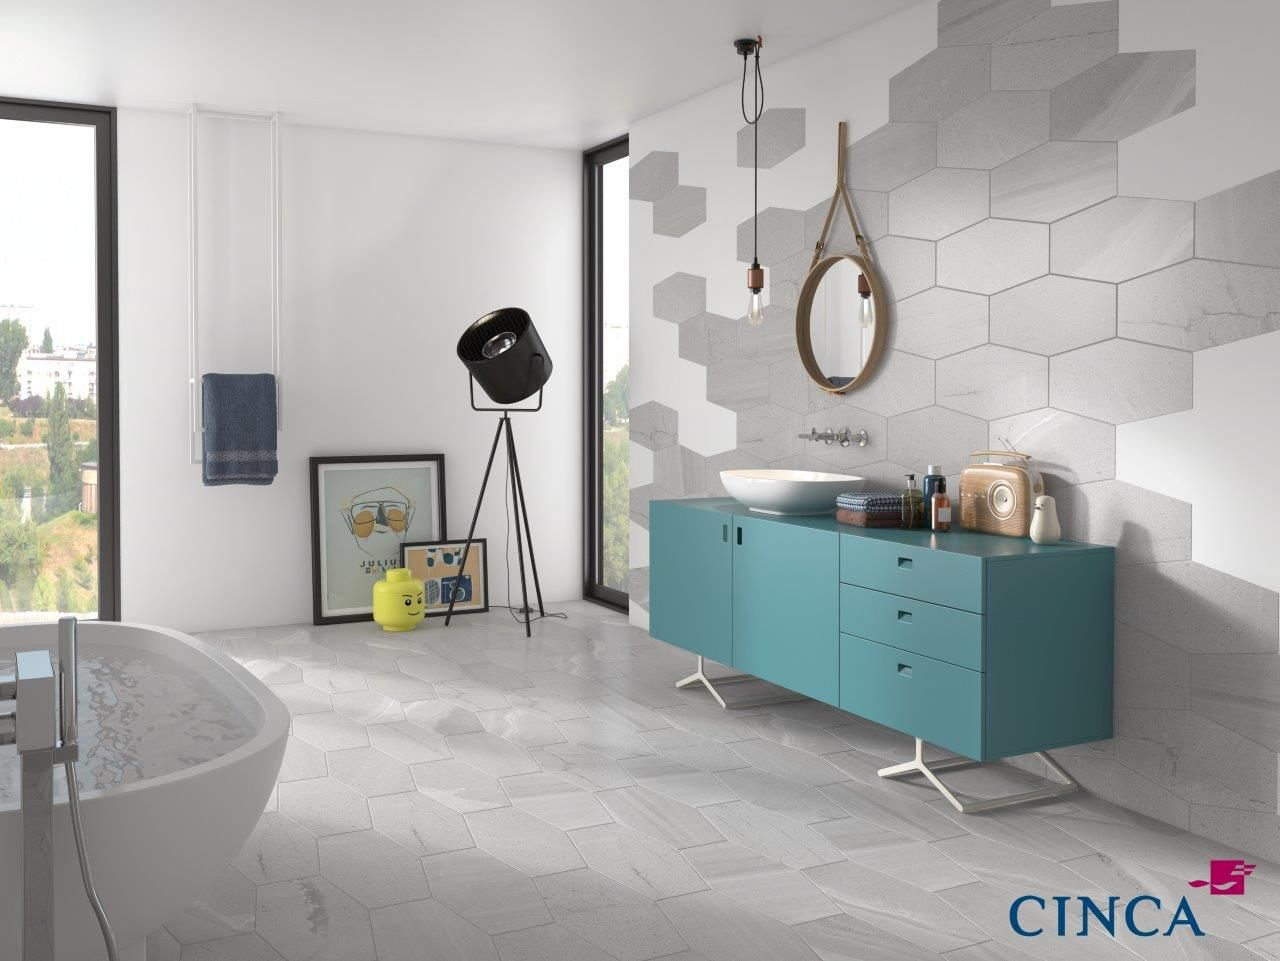 Image by amazing porcelain hexagon tile decorating ideas gallery in - New Cinca Hexagon Tiles 9 5 X19 25 Porcelain Tiles 6 Colors